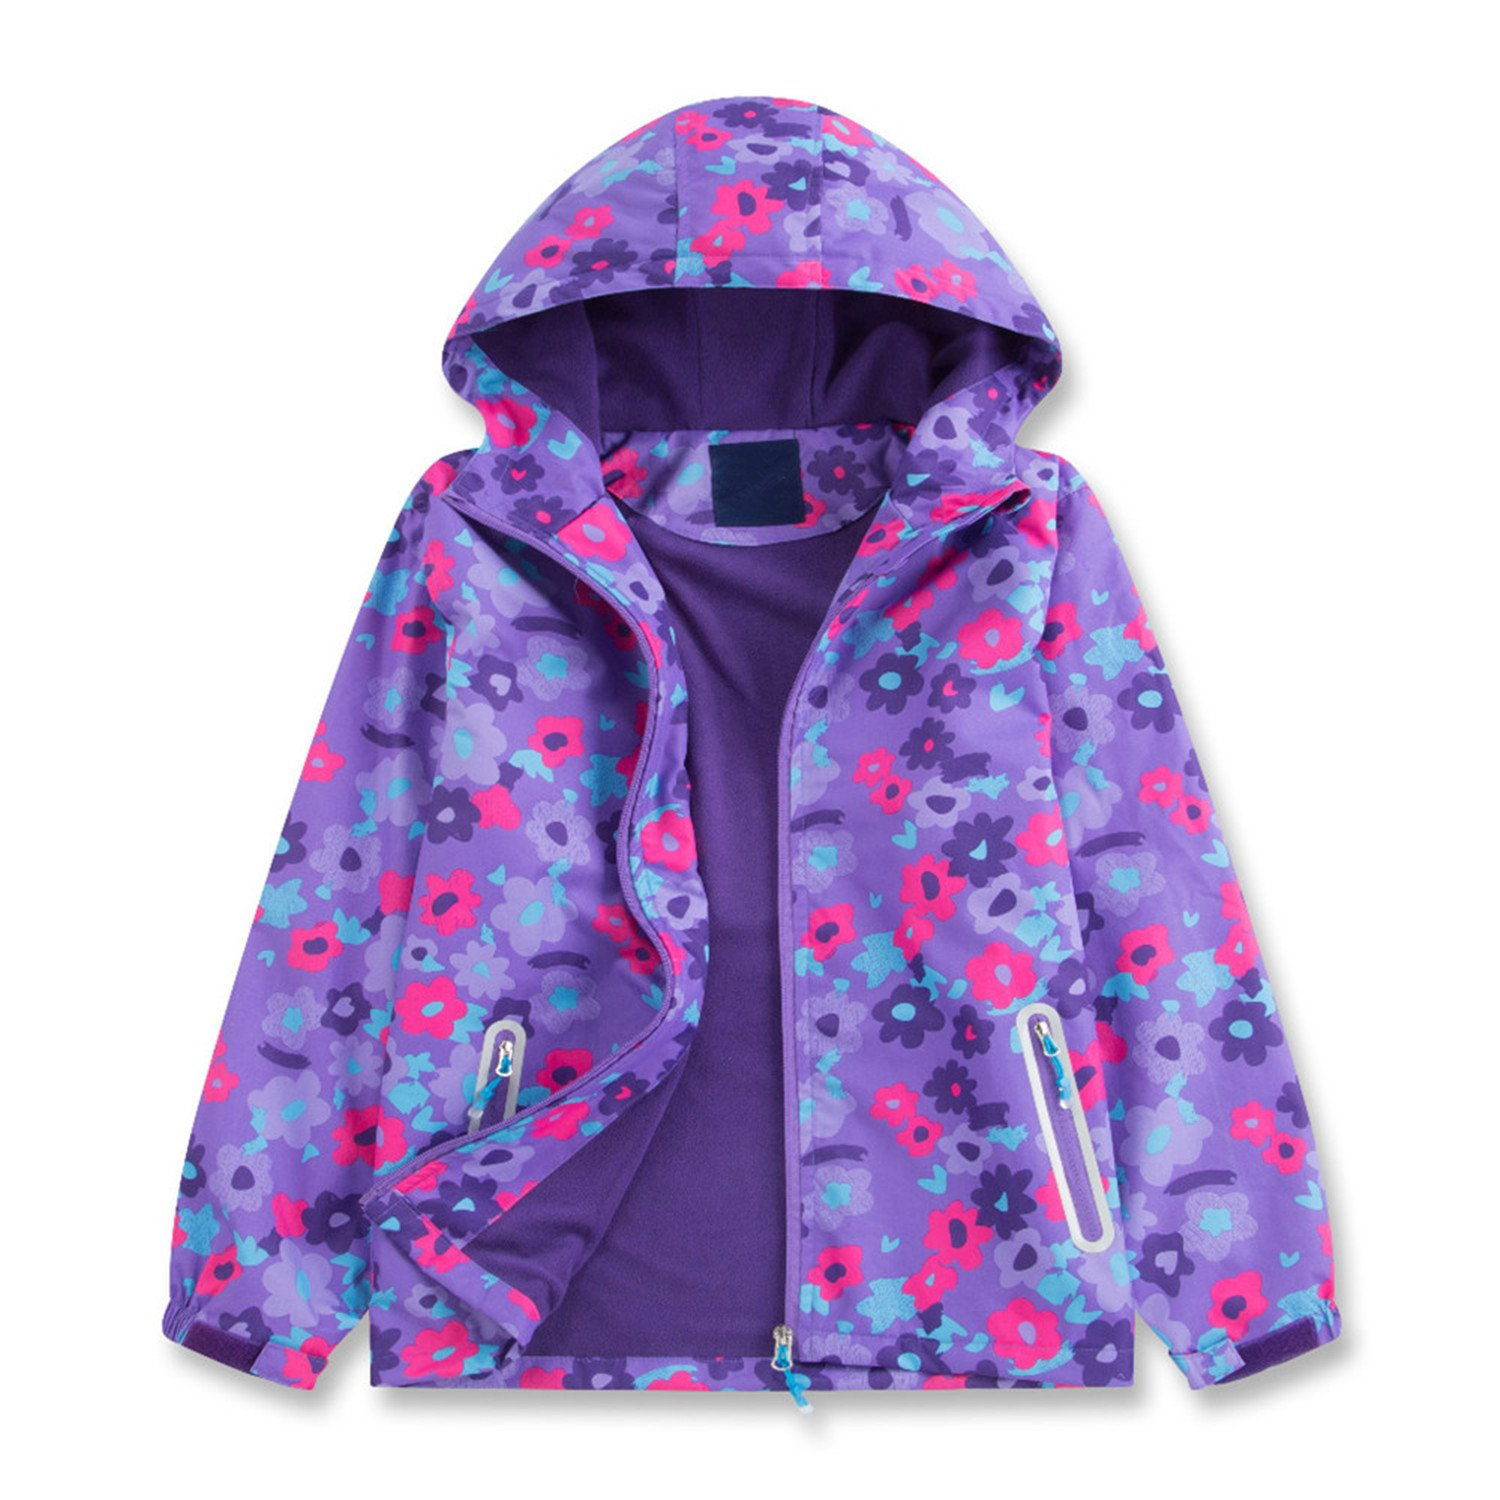 Star Flower Little Girls Rain Jacket Coats with Hood (8, Violet) by Star Flower (Image #1)